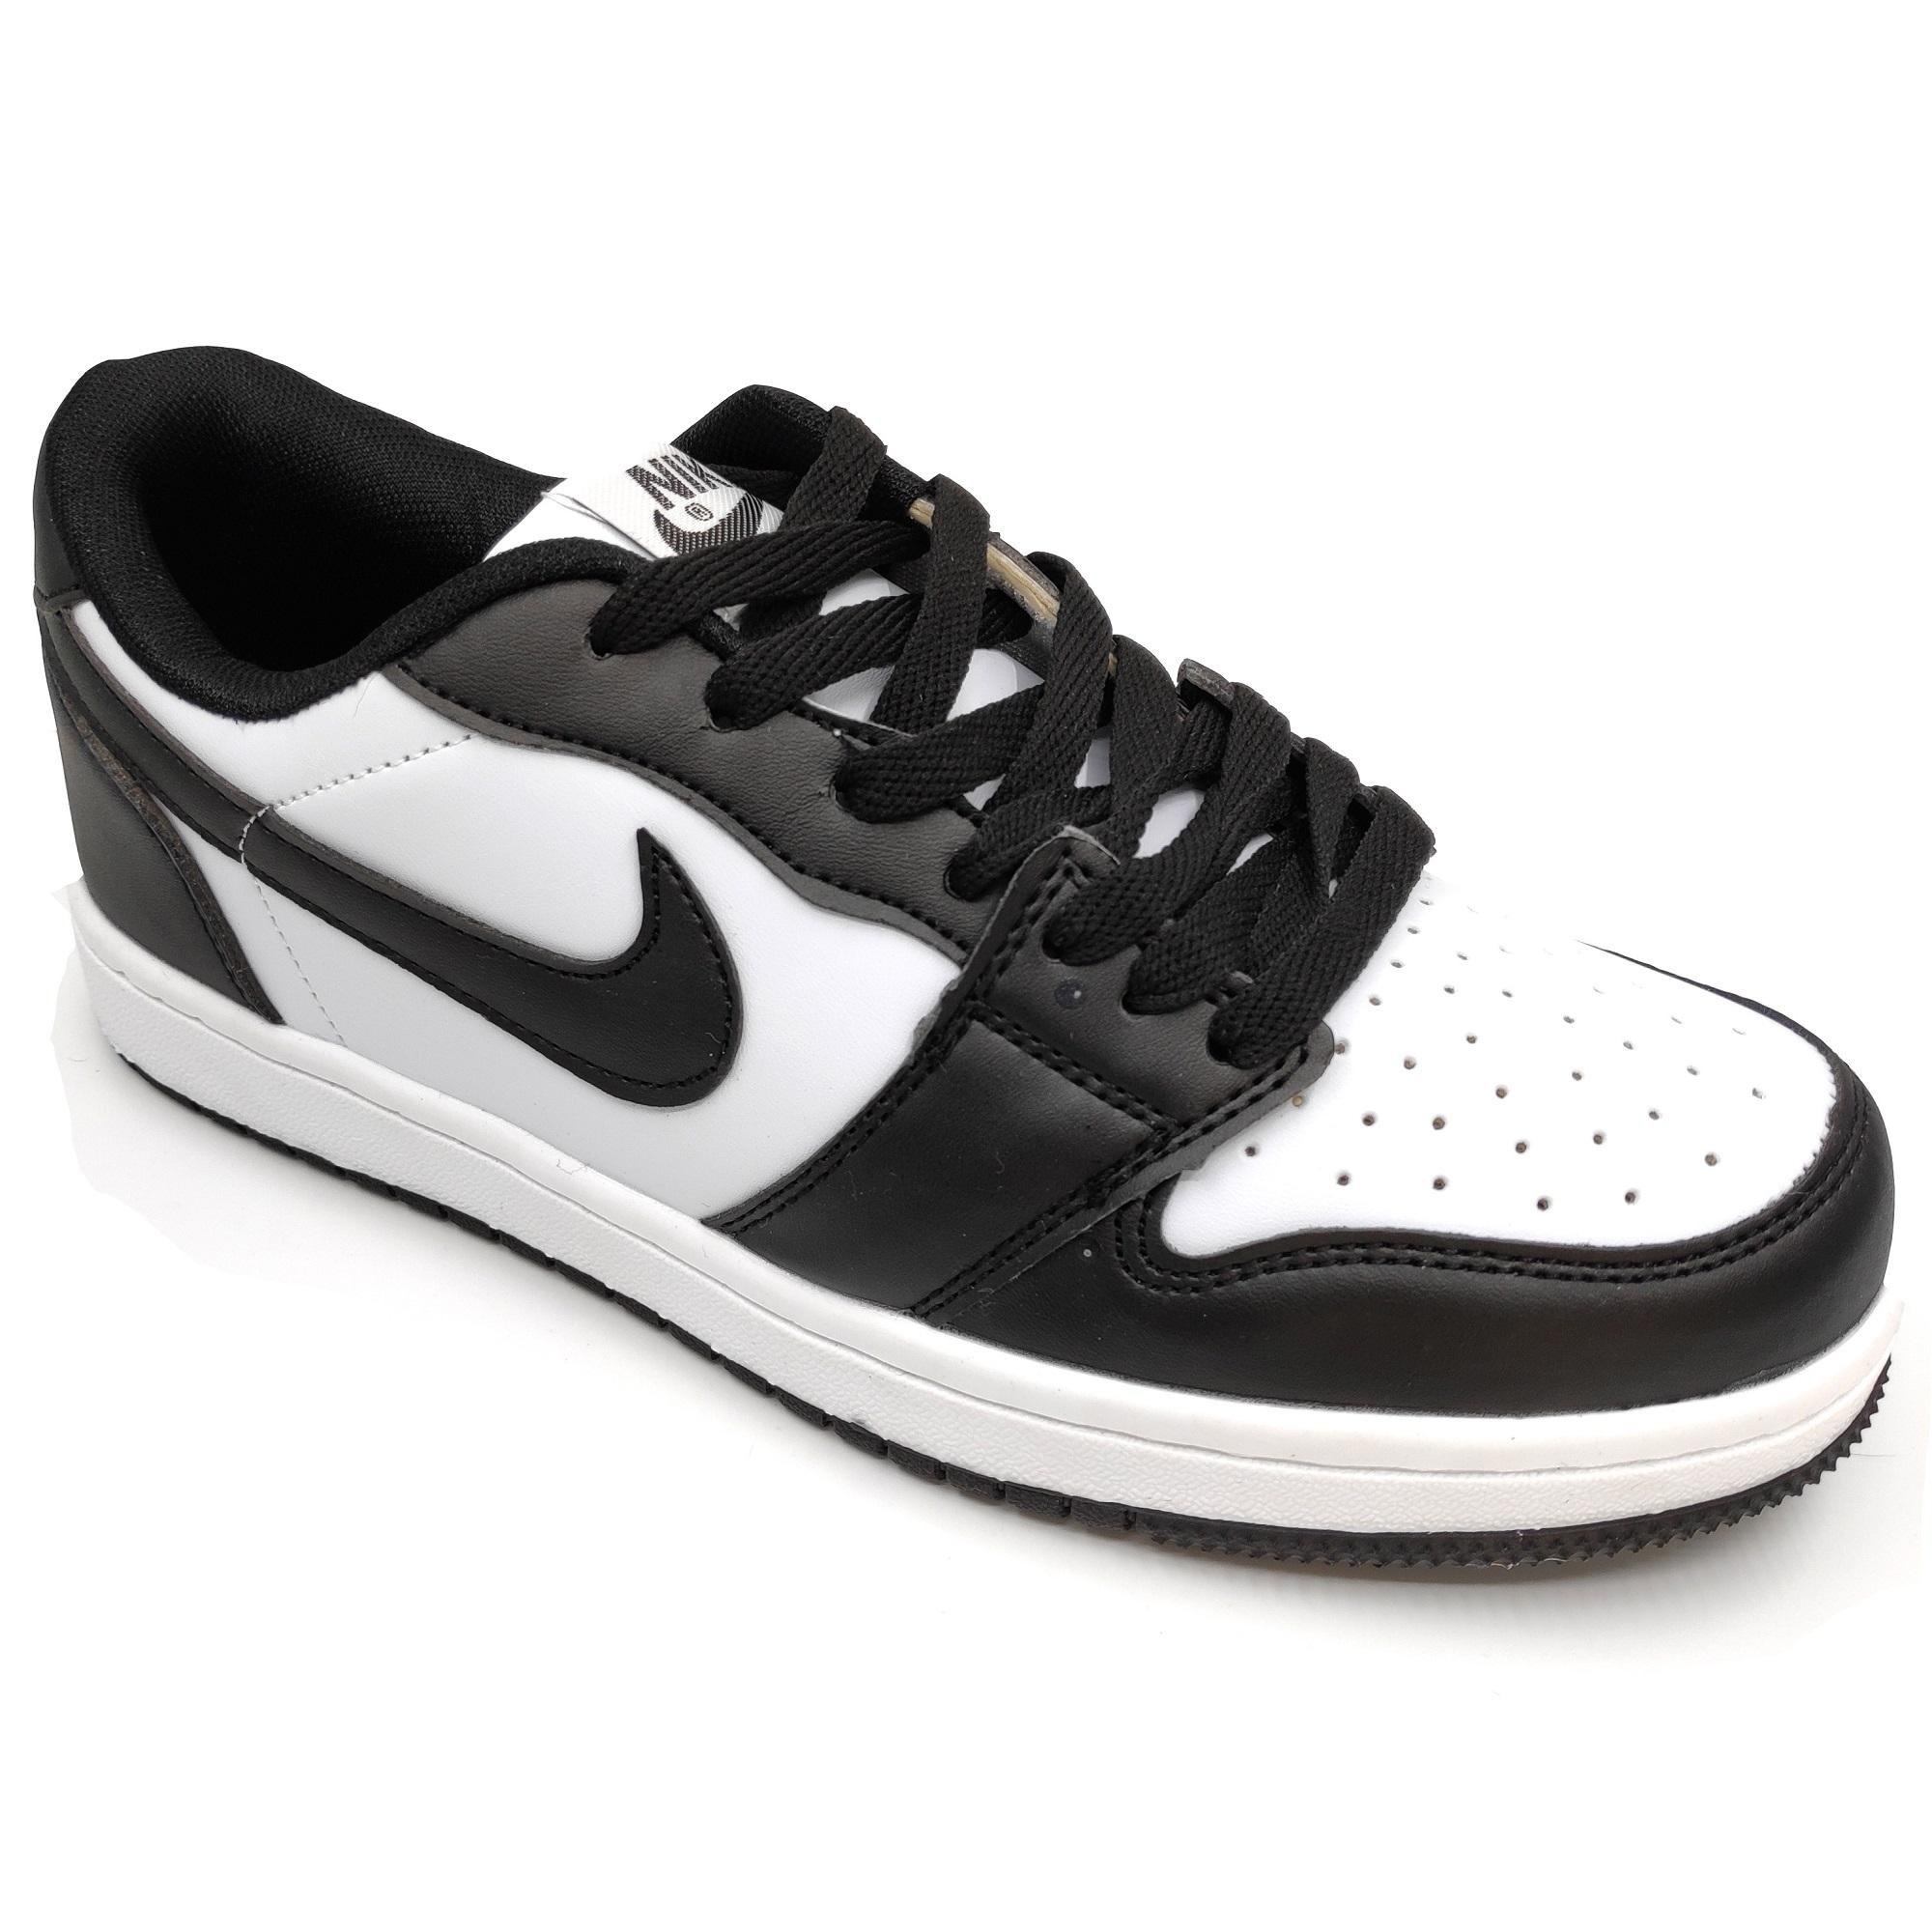 New Arrival Authentic Just do it Air Force 1 Low Men s Comfortable Skateboarding  Shoes Sport Sneakers 9873ba92079e